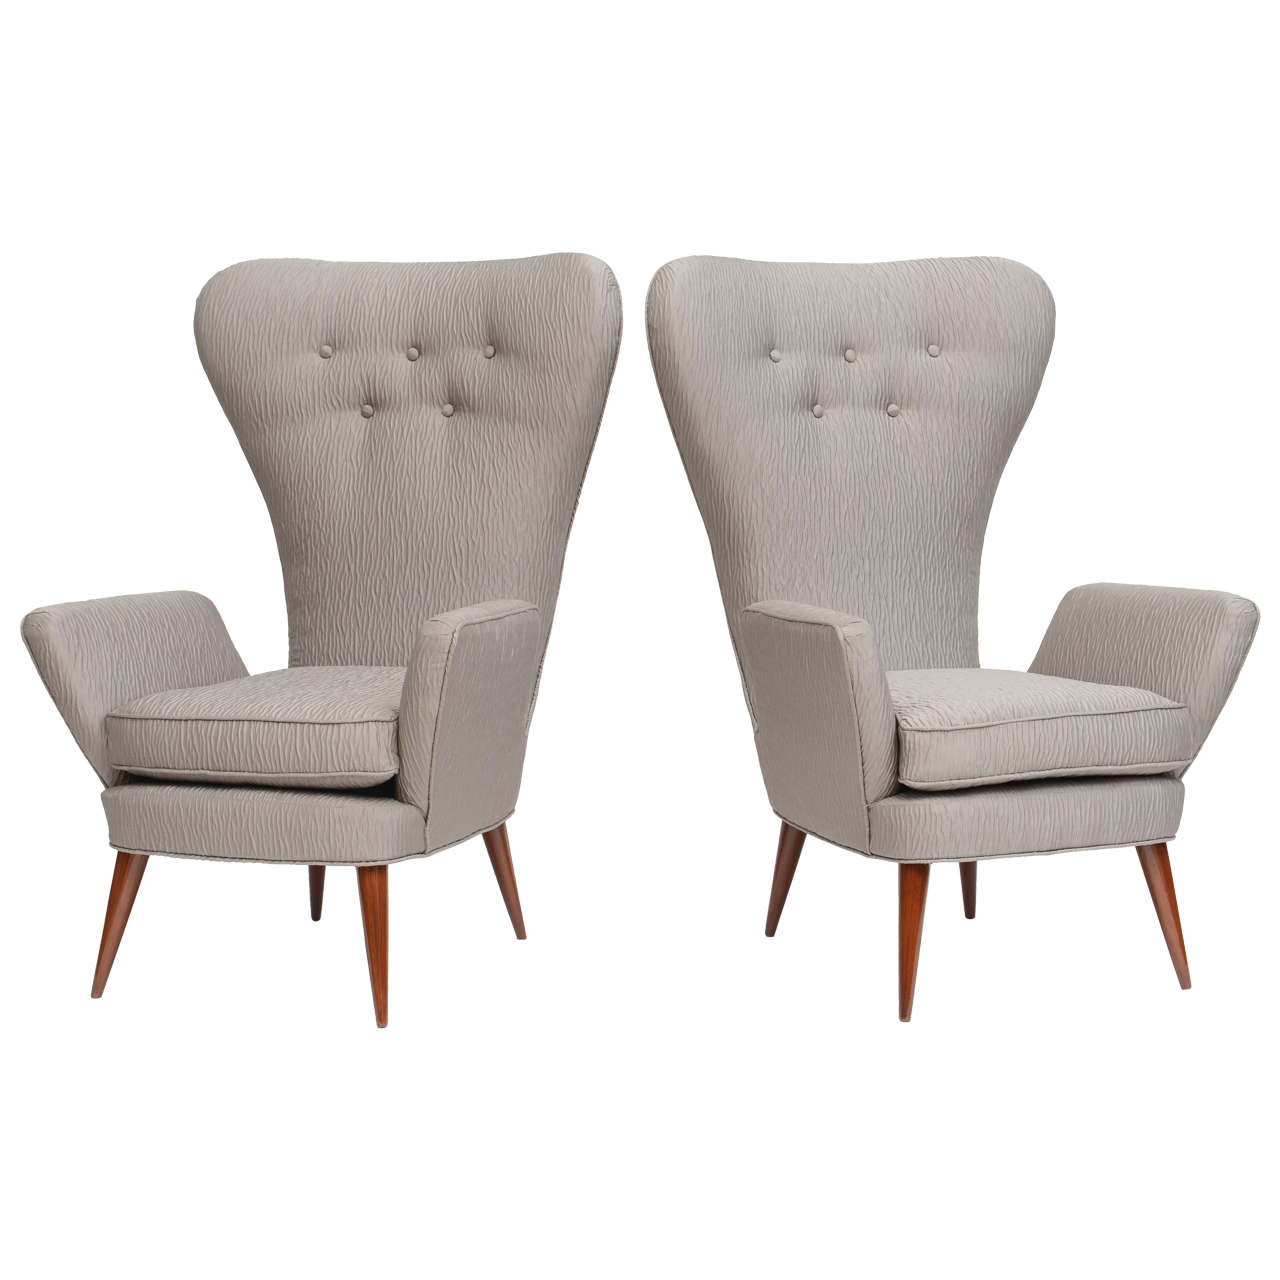 Living Room Modern Armchair Sale pair of italian modern high back chairs italy for sale at 1stdibs 1